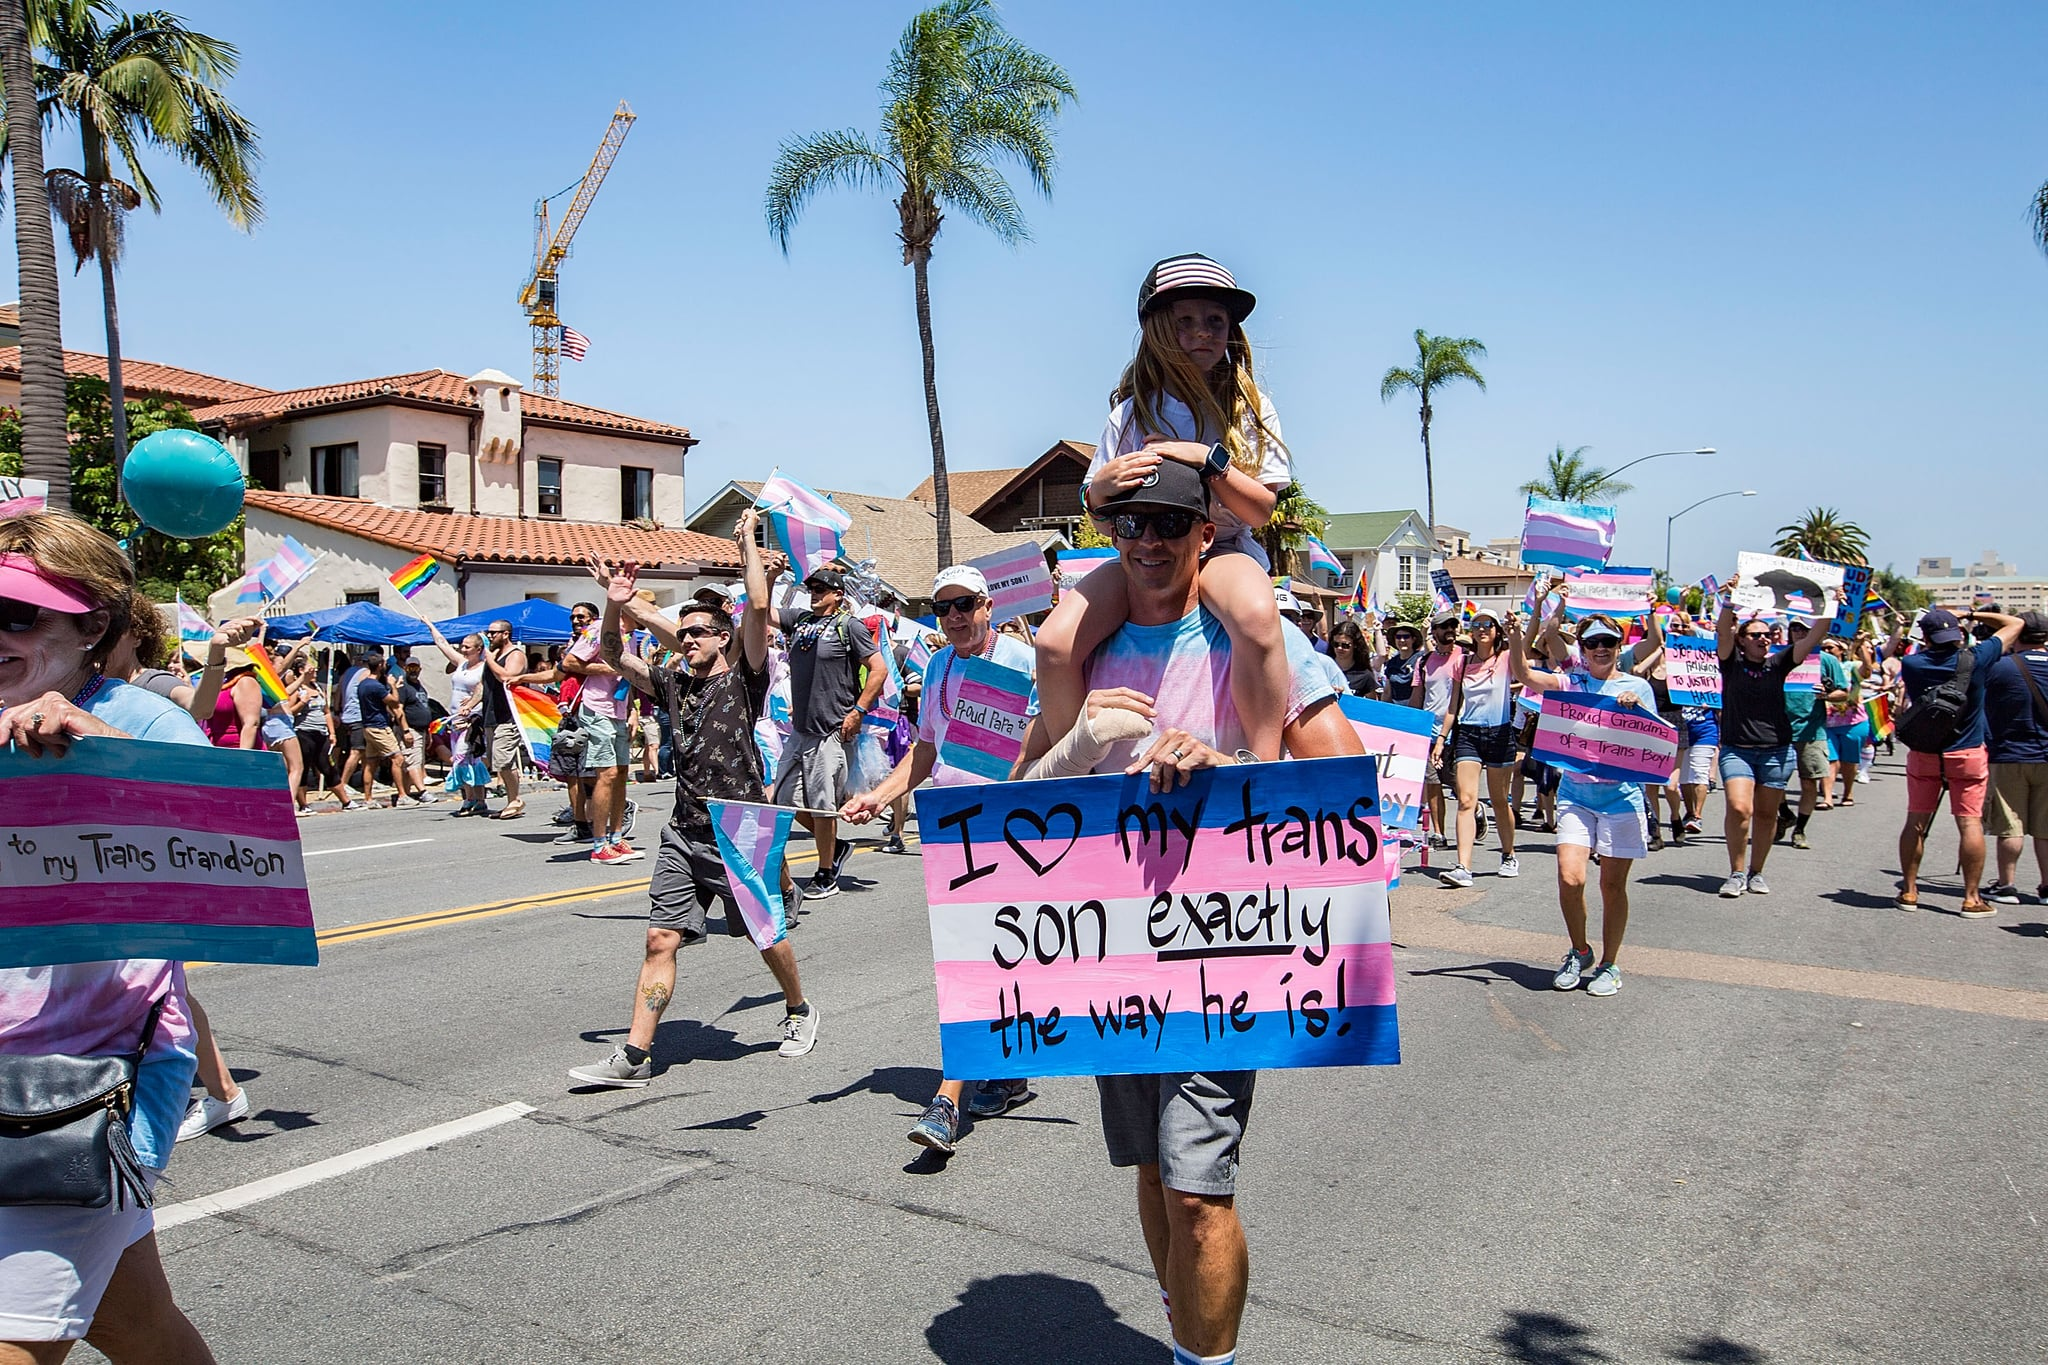 SAN DIEGO, CA - JULY 14:  General view of the atmosphere at the San Diego Pride Parade at Balboa Park on July 14, 2018 in San Diego, California.  (Photo by Daniel Knighton/Getty Images)